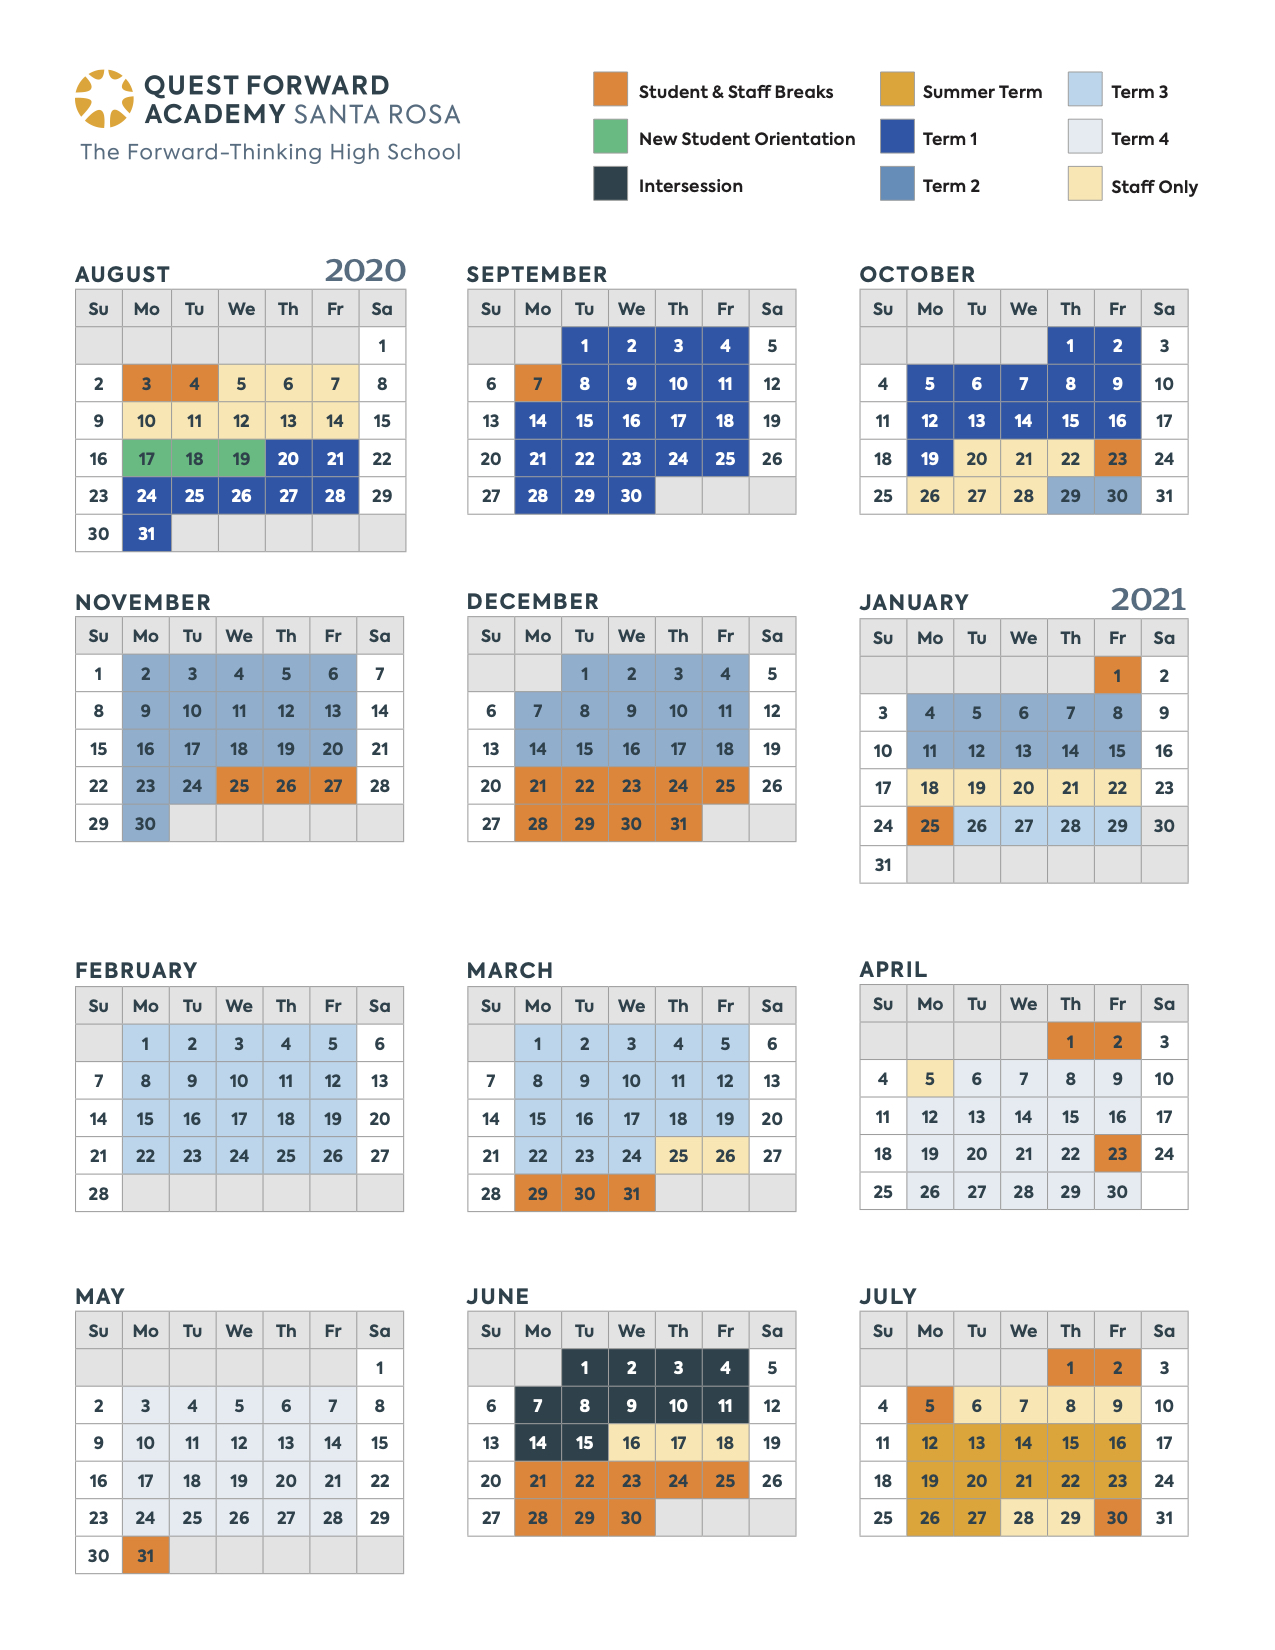 The 2020-2021 school year calendar for Quest Forward Academy Santa Rosa.